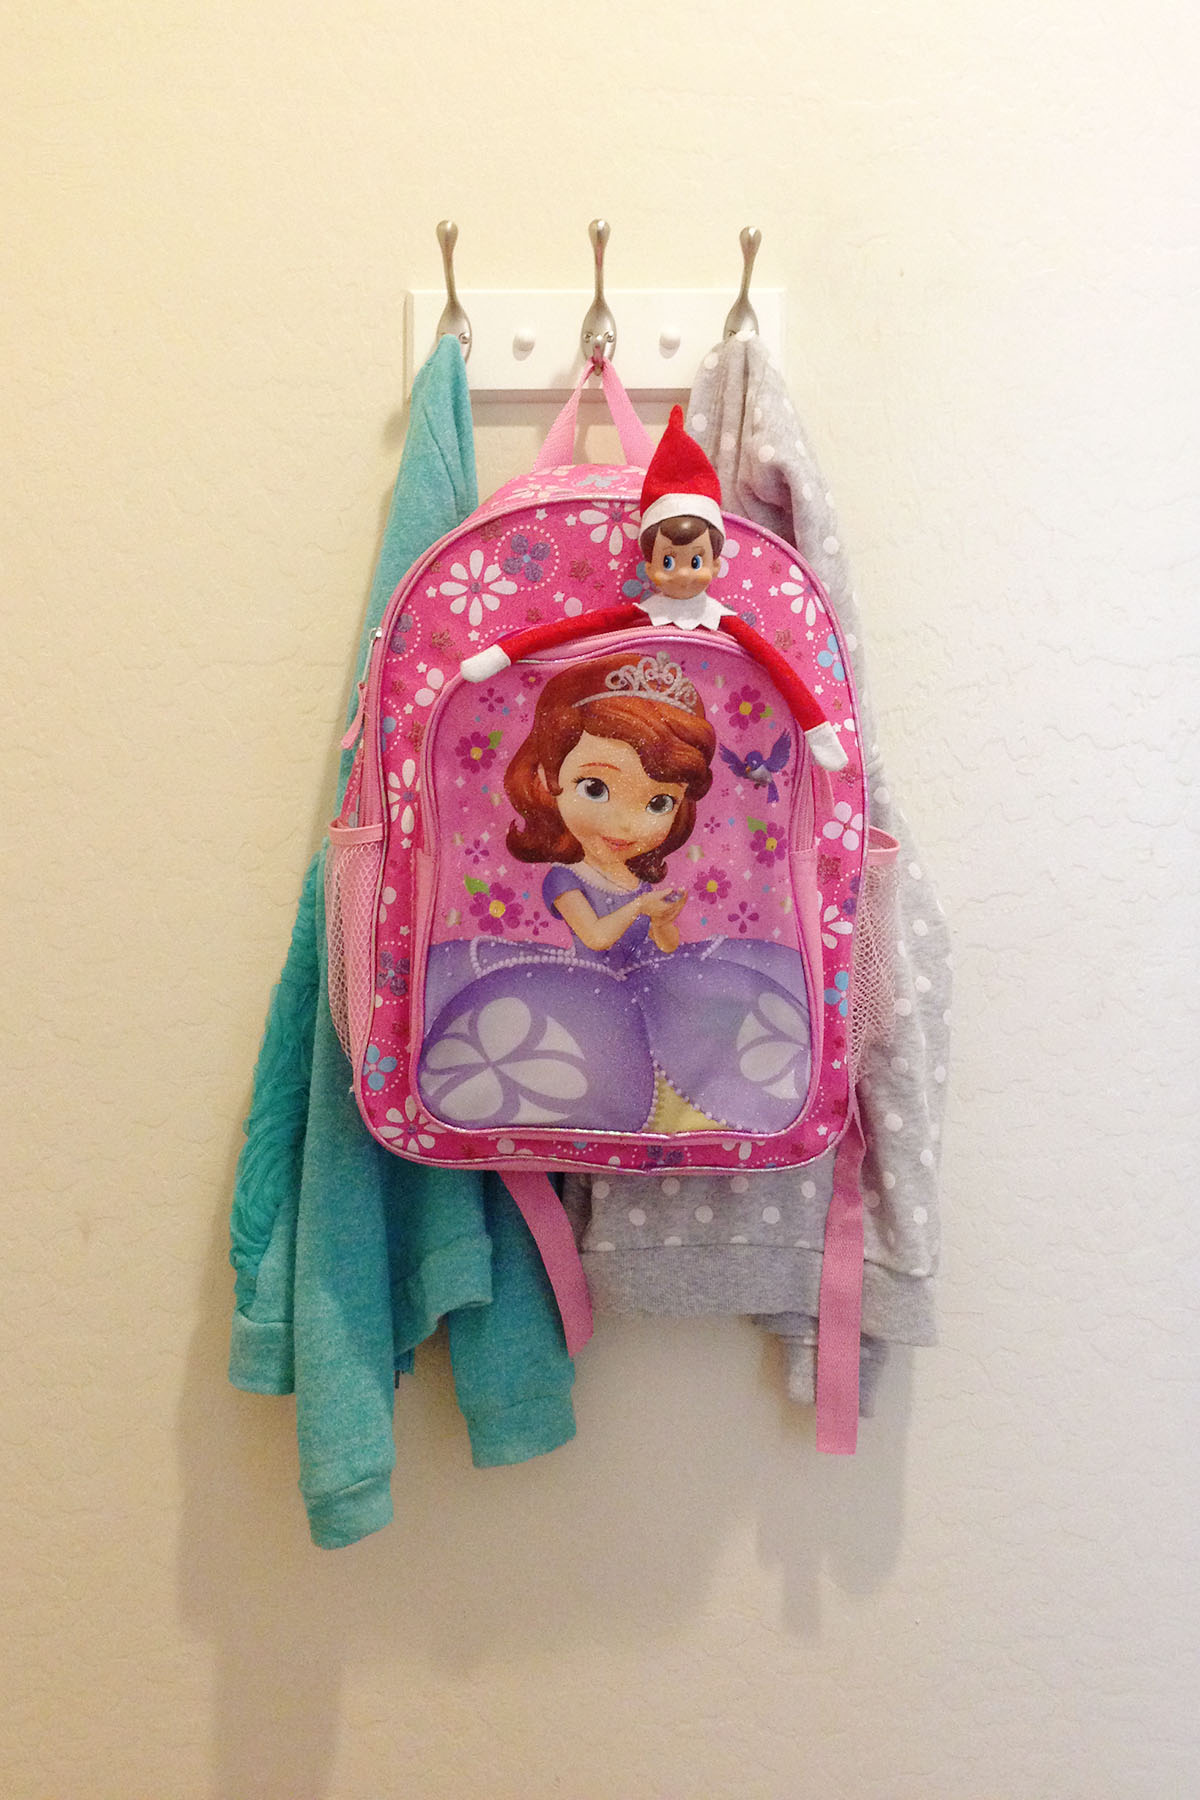 Elf hides in a child's backpack for them to find on their way out the door to school.